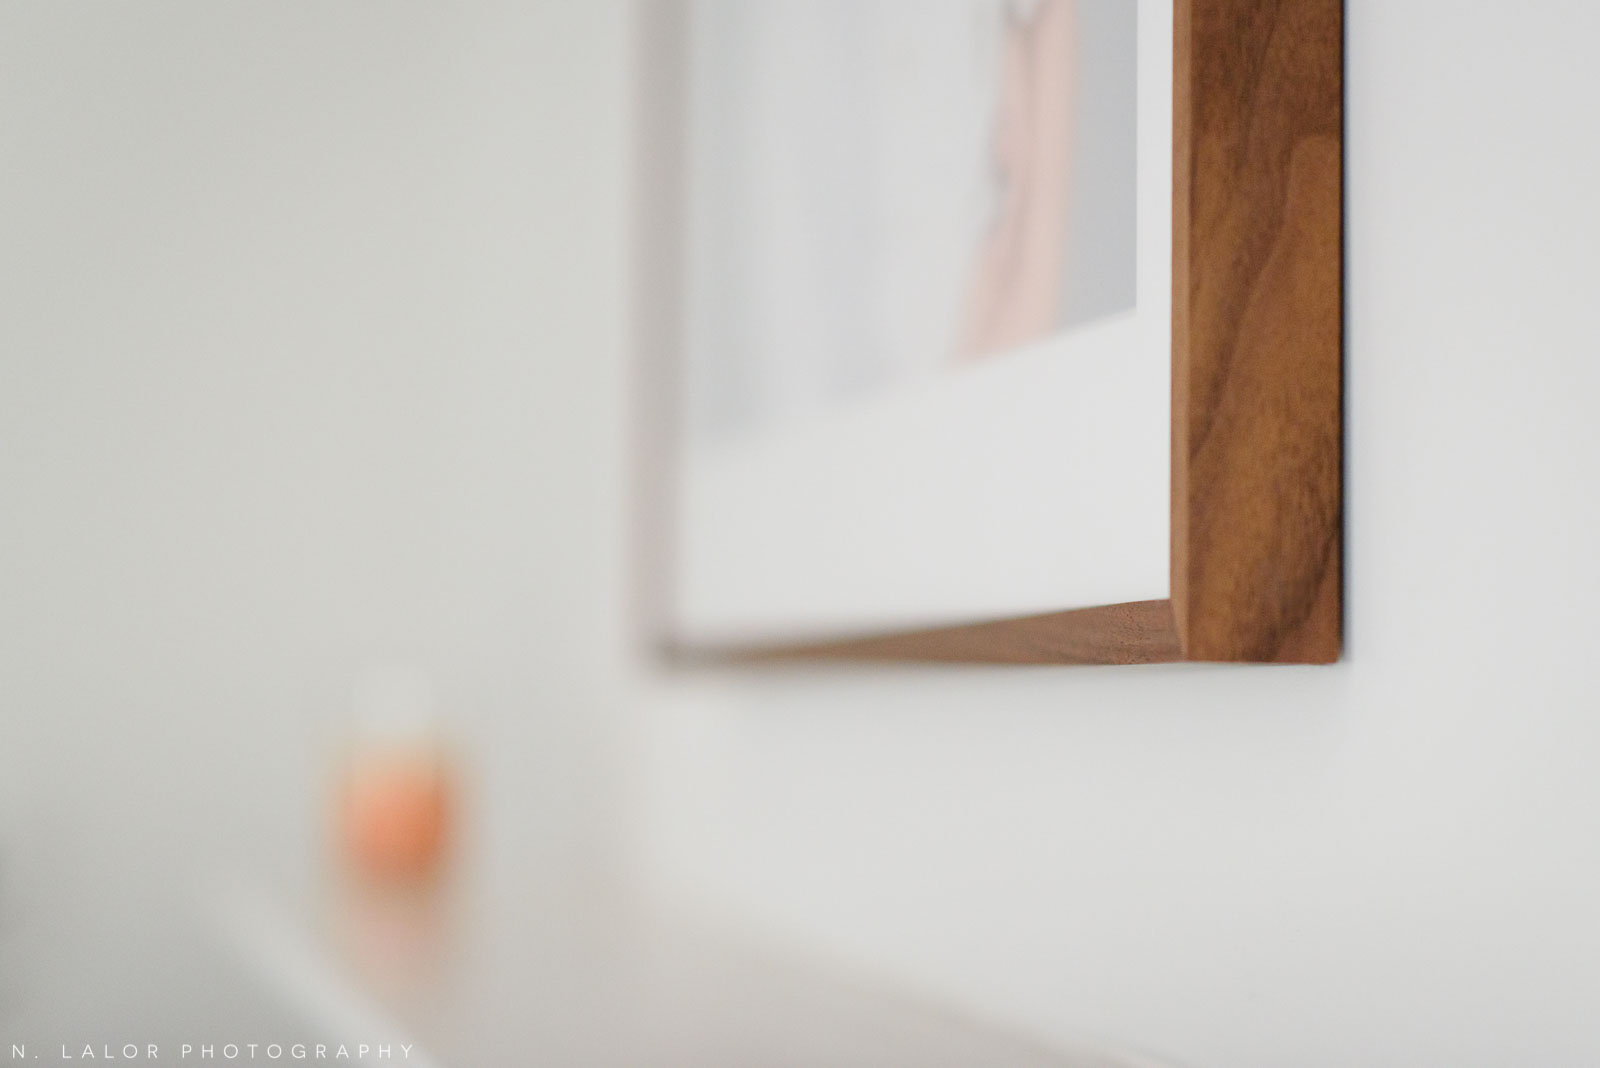 Detail shot of a walnut frame by Saw and Mitre Frame Co. Photograph by N. Lalor Photography.